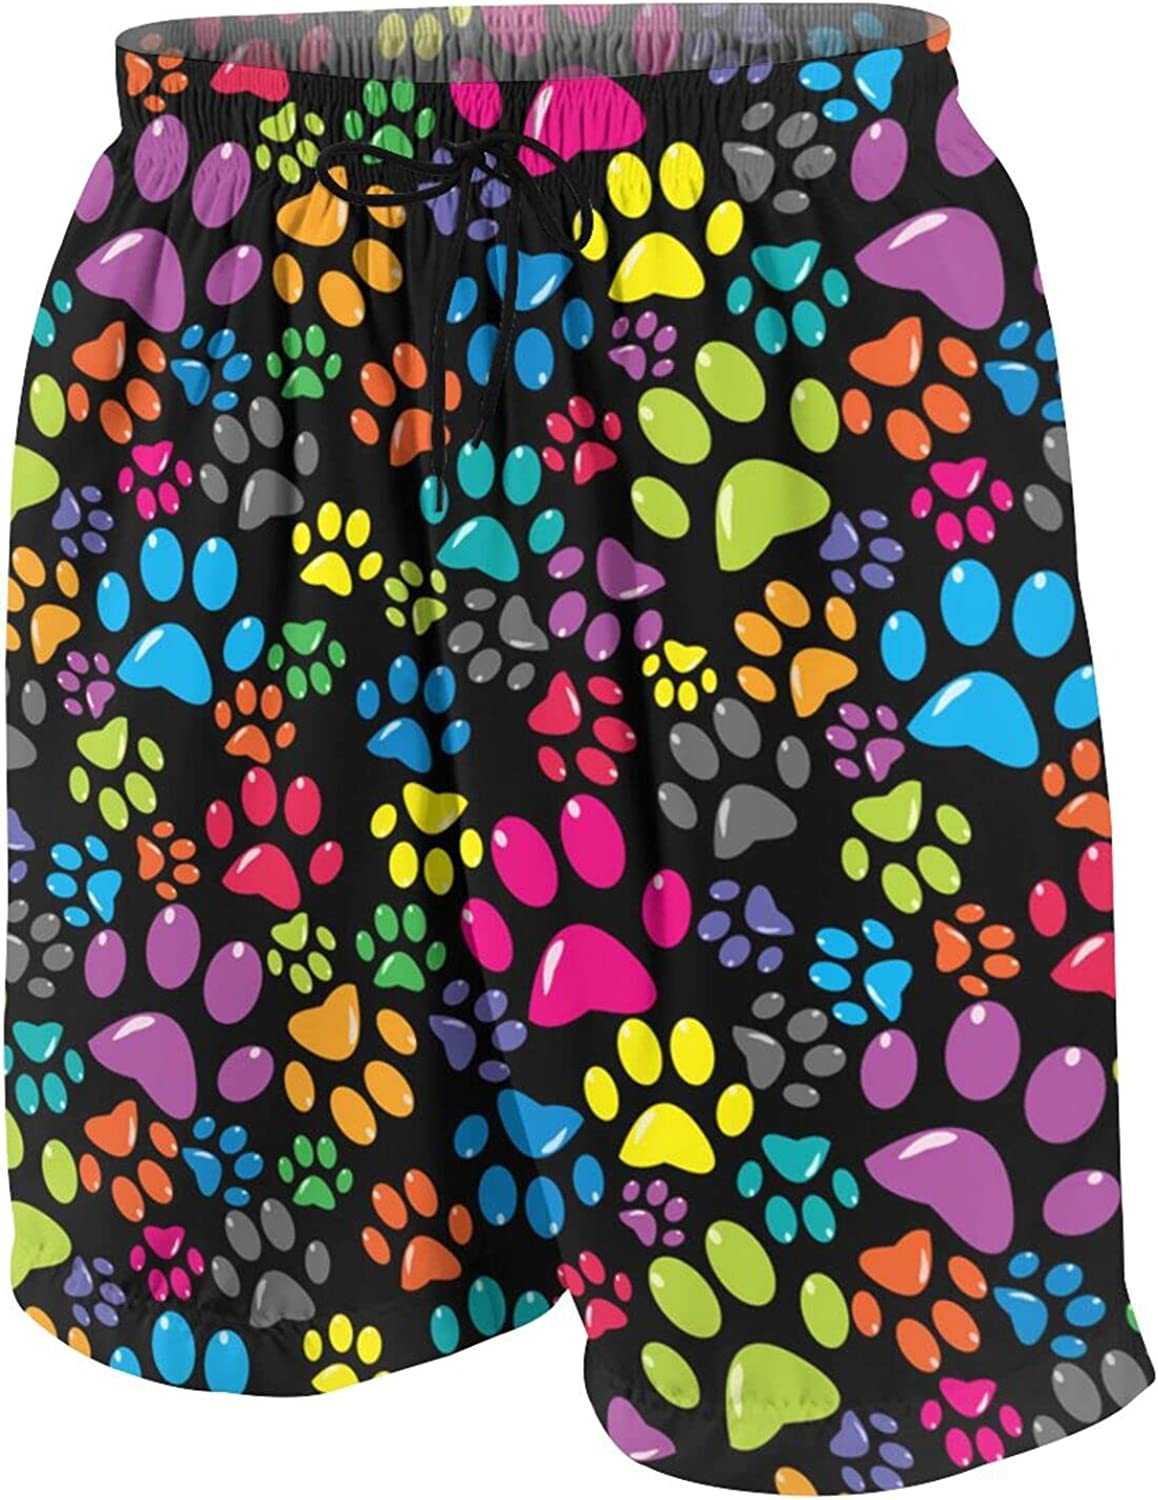 Colorful with Colored Paws Kids Beach Shorts Youth Boys Board Shorts Trunk Swim Swimming Pants for 7-20 Years White